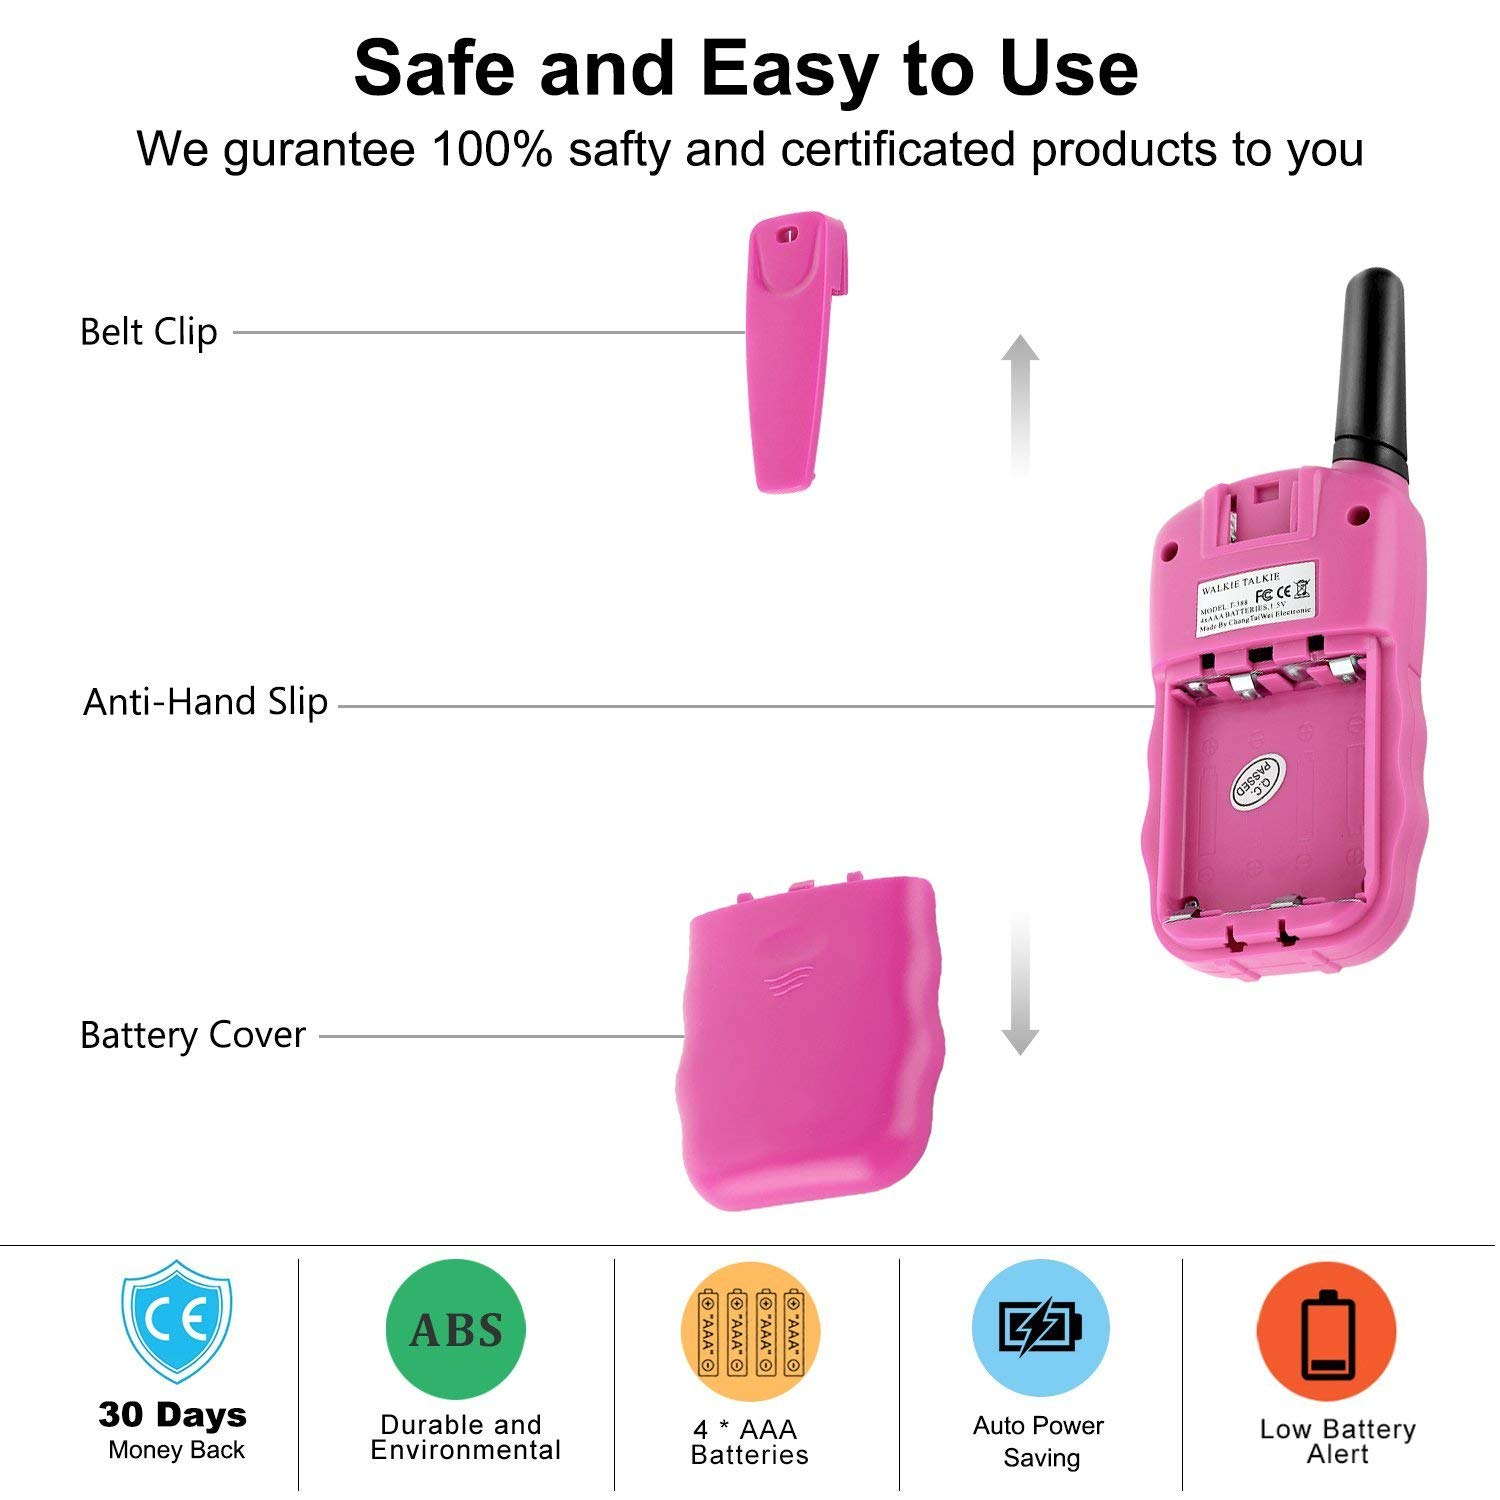 Kids Walkie Talkies Toys for 3-12 Year Old Boys Girls Toddlers, 4 Pack Walkie Talkies with 4 Earphones, 3 Mile Range 22 Channel Flashlight Two-Way Radio, Accessory for Outdoor Adventure Camping Game by iGeeKid (Image #8)